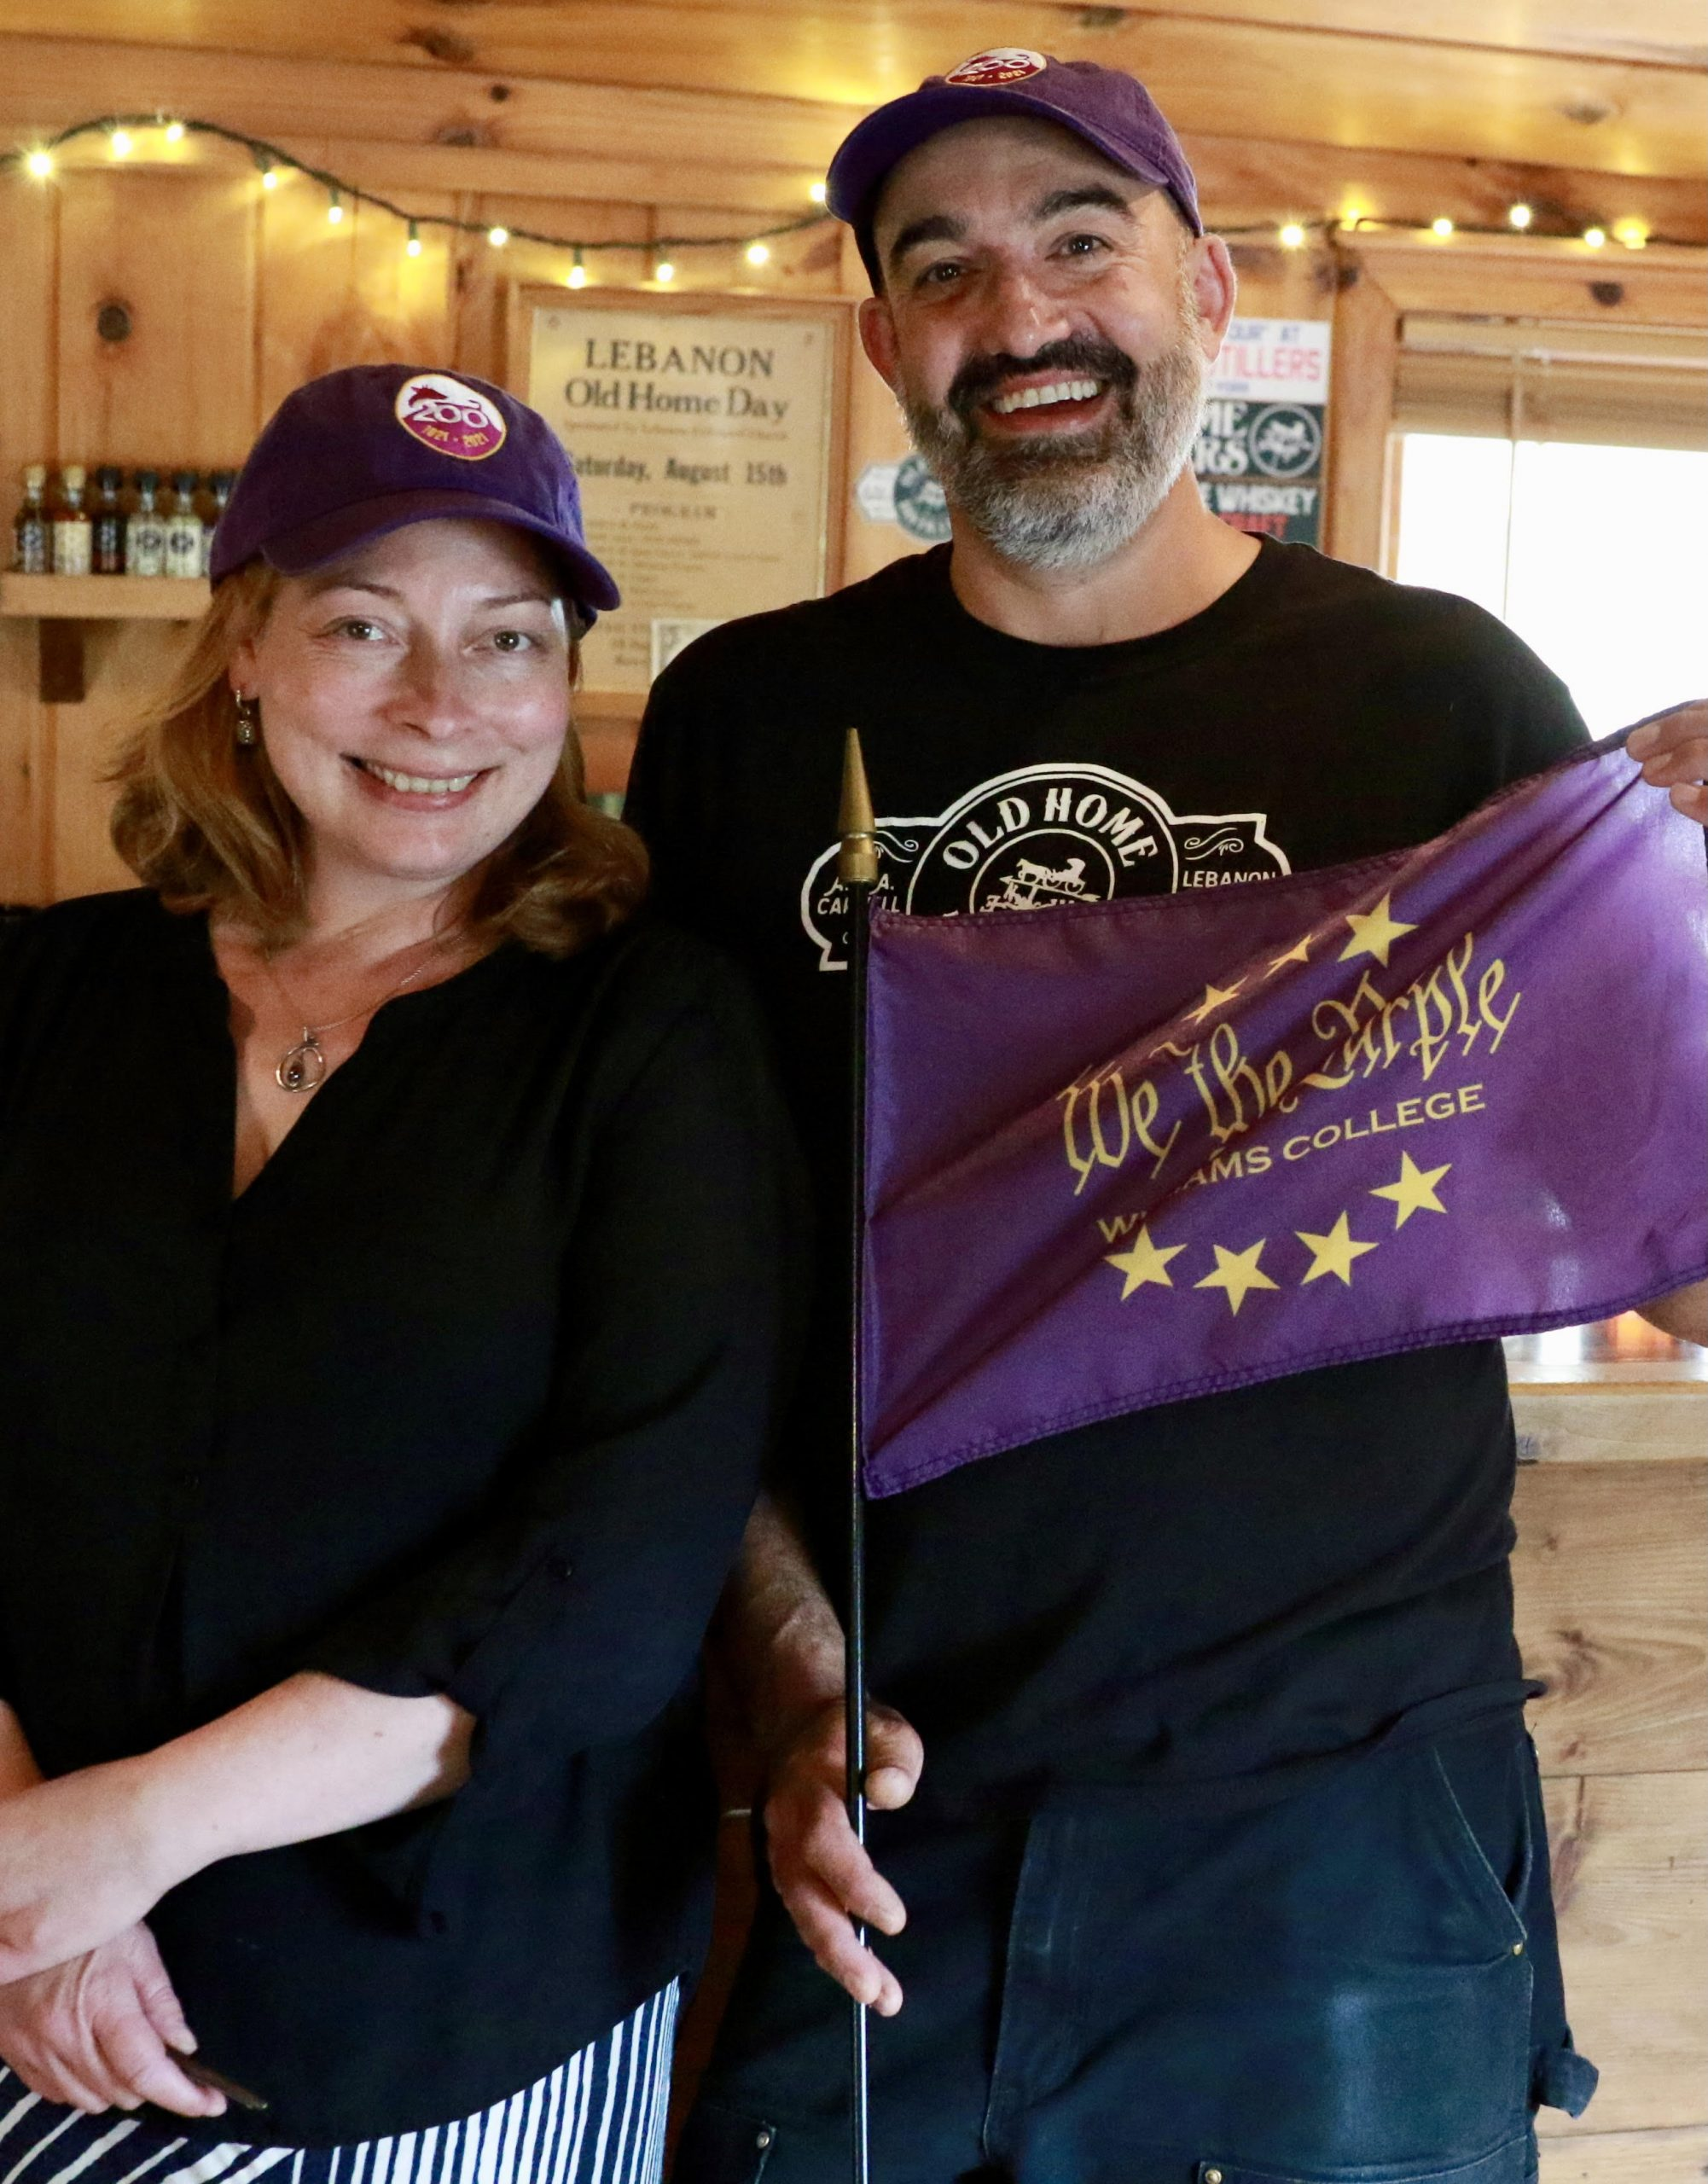 Aaron and his wife, Jasmine, posing for a photo inside Old Home Distillers' tasting room. Jasmine is standing to the left of Aaron and is wearing a black top with a purple Williams bicentennial baseball cap, with her hands crosses. Aaron is standing to Jasmine's right while holding a 'We the Purple' purple flag and wearing a black Old Home Distillers branded shirt and a Williams bicentennial baseball cap.